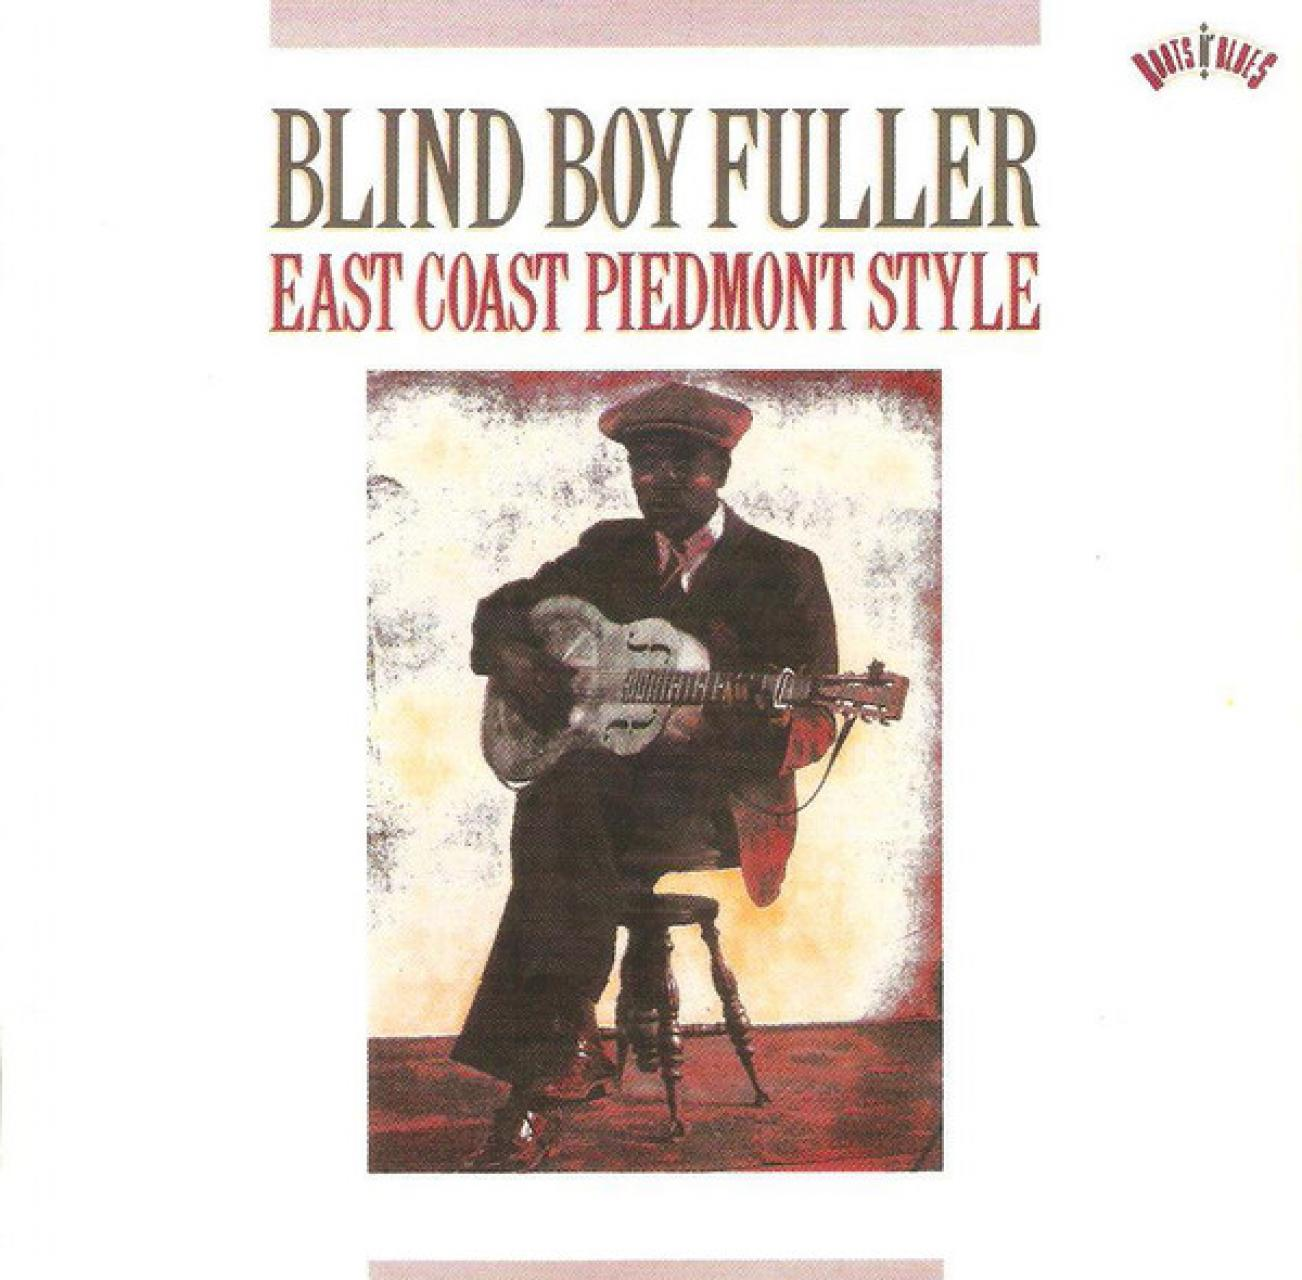 Blind Boy Fuller - East Coast Piedmont Style